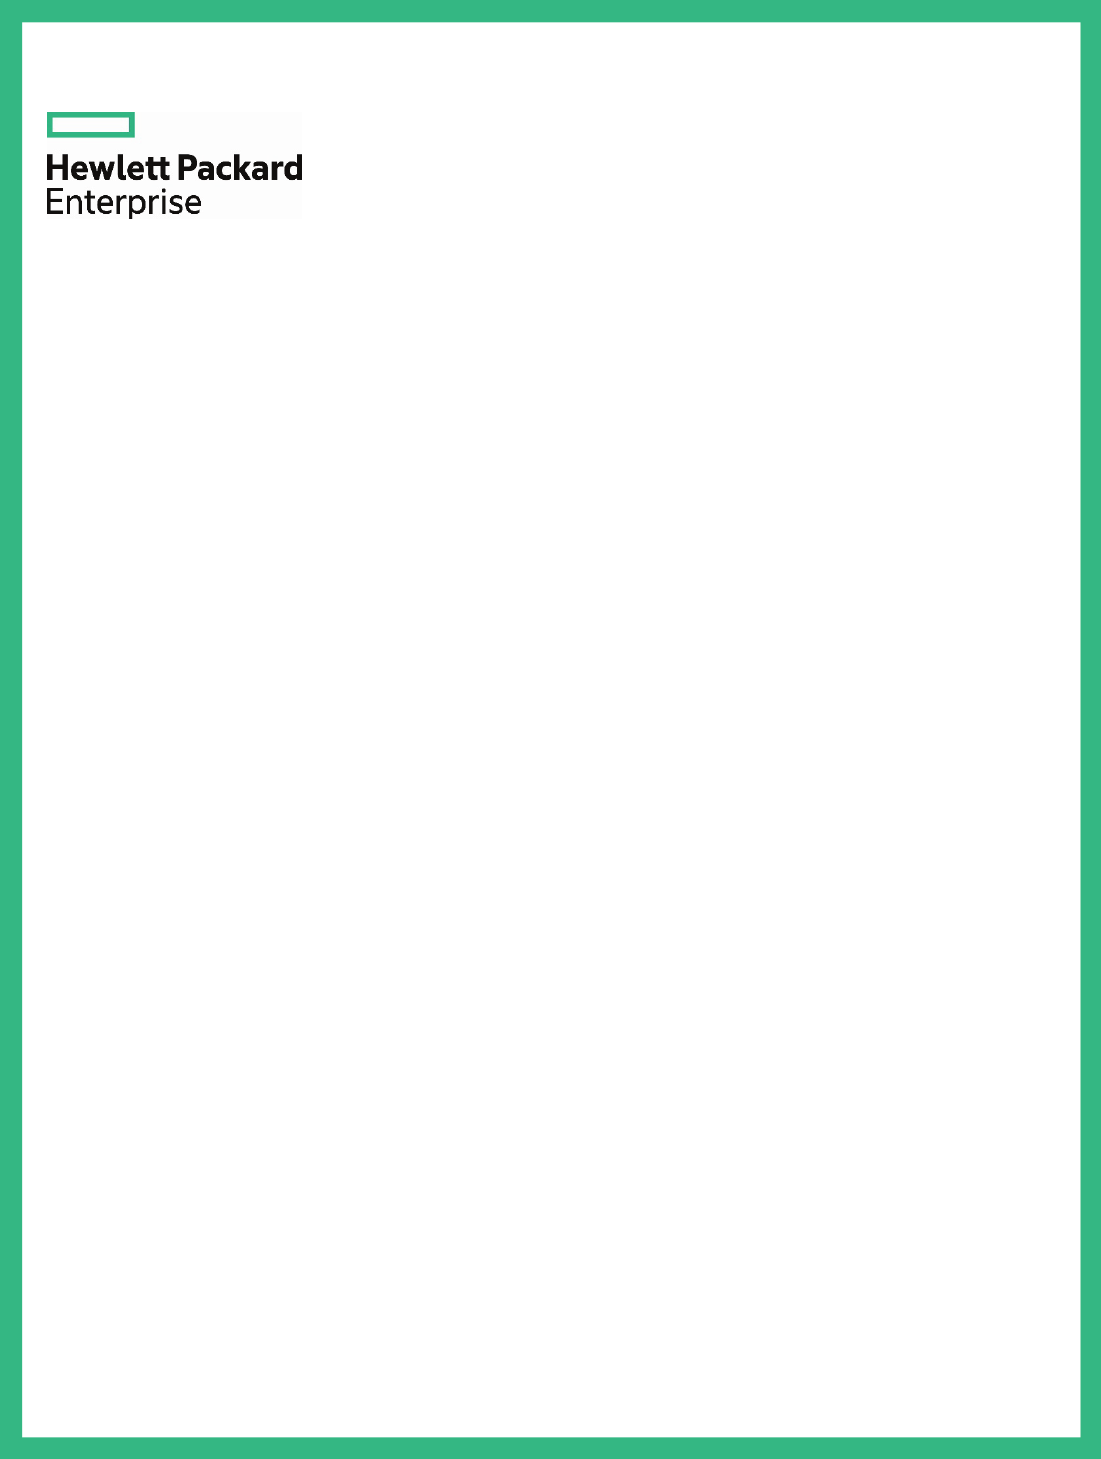 Splunk Enterprise powered by HPE Moonshot and HPE ProLiant